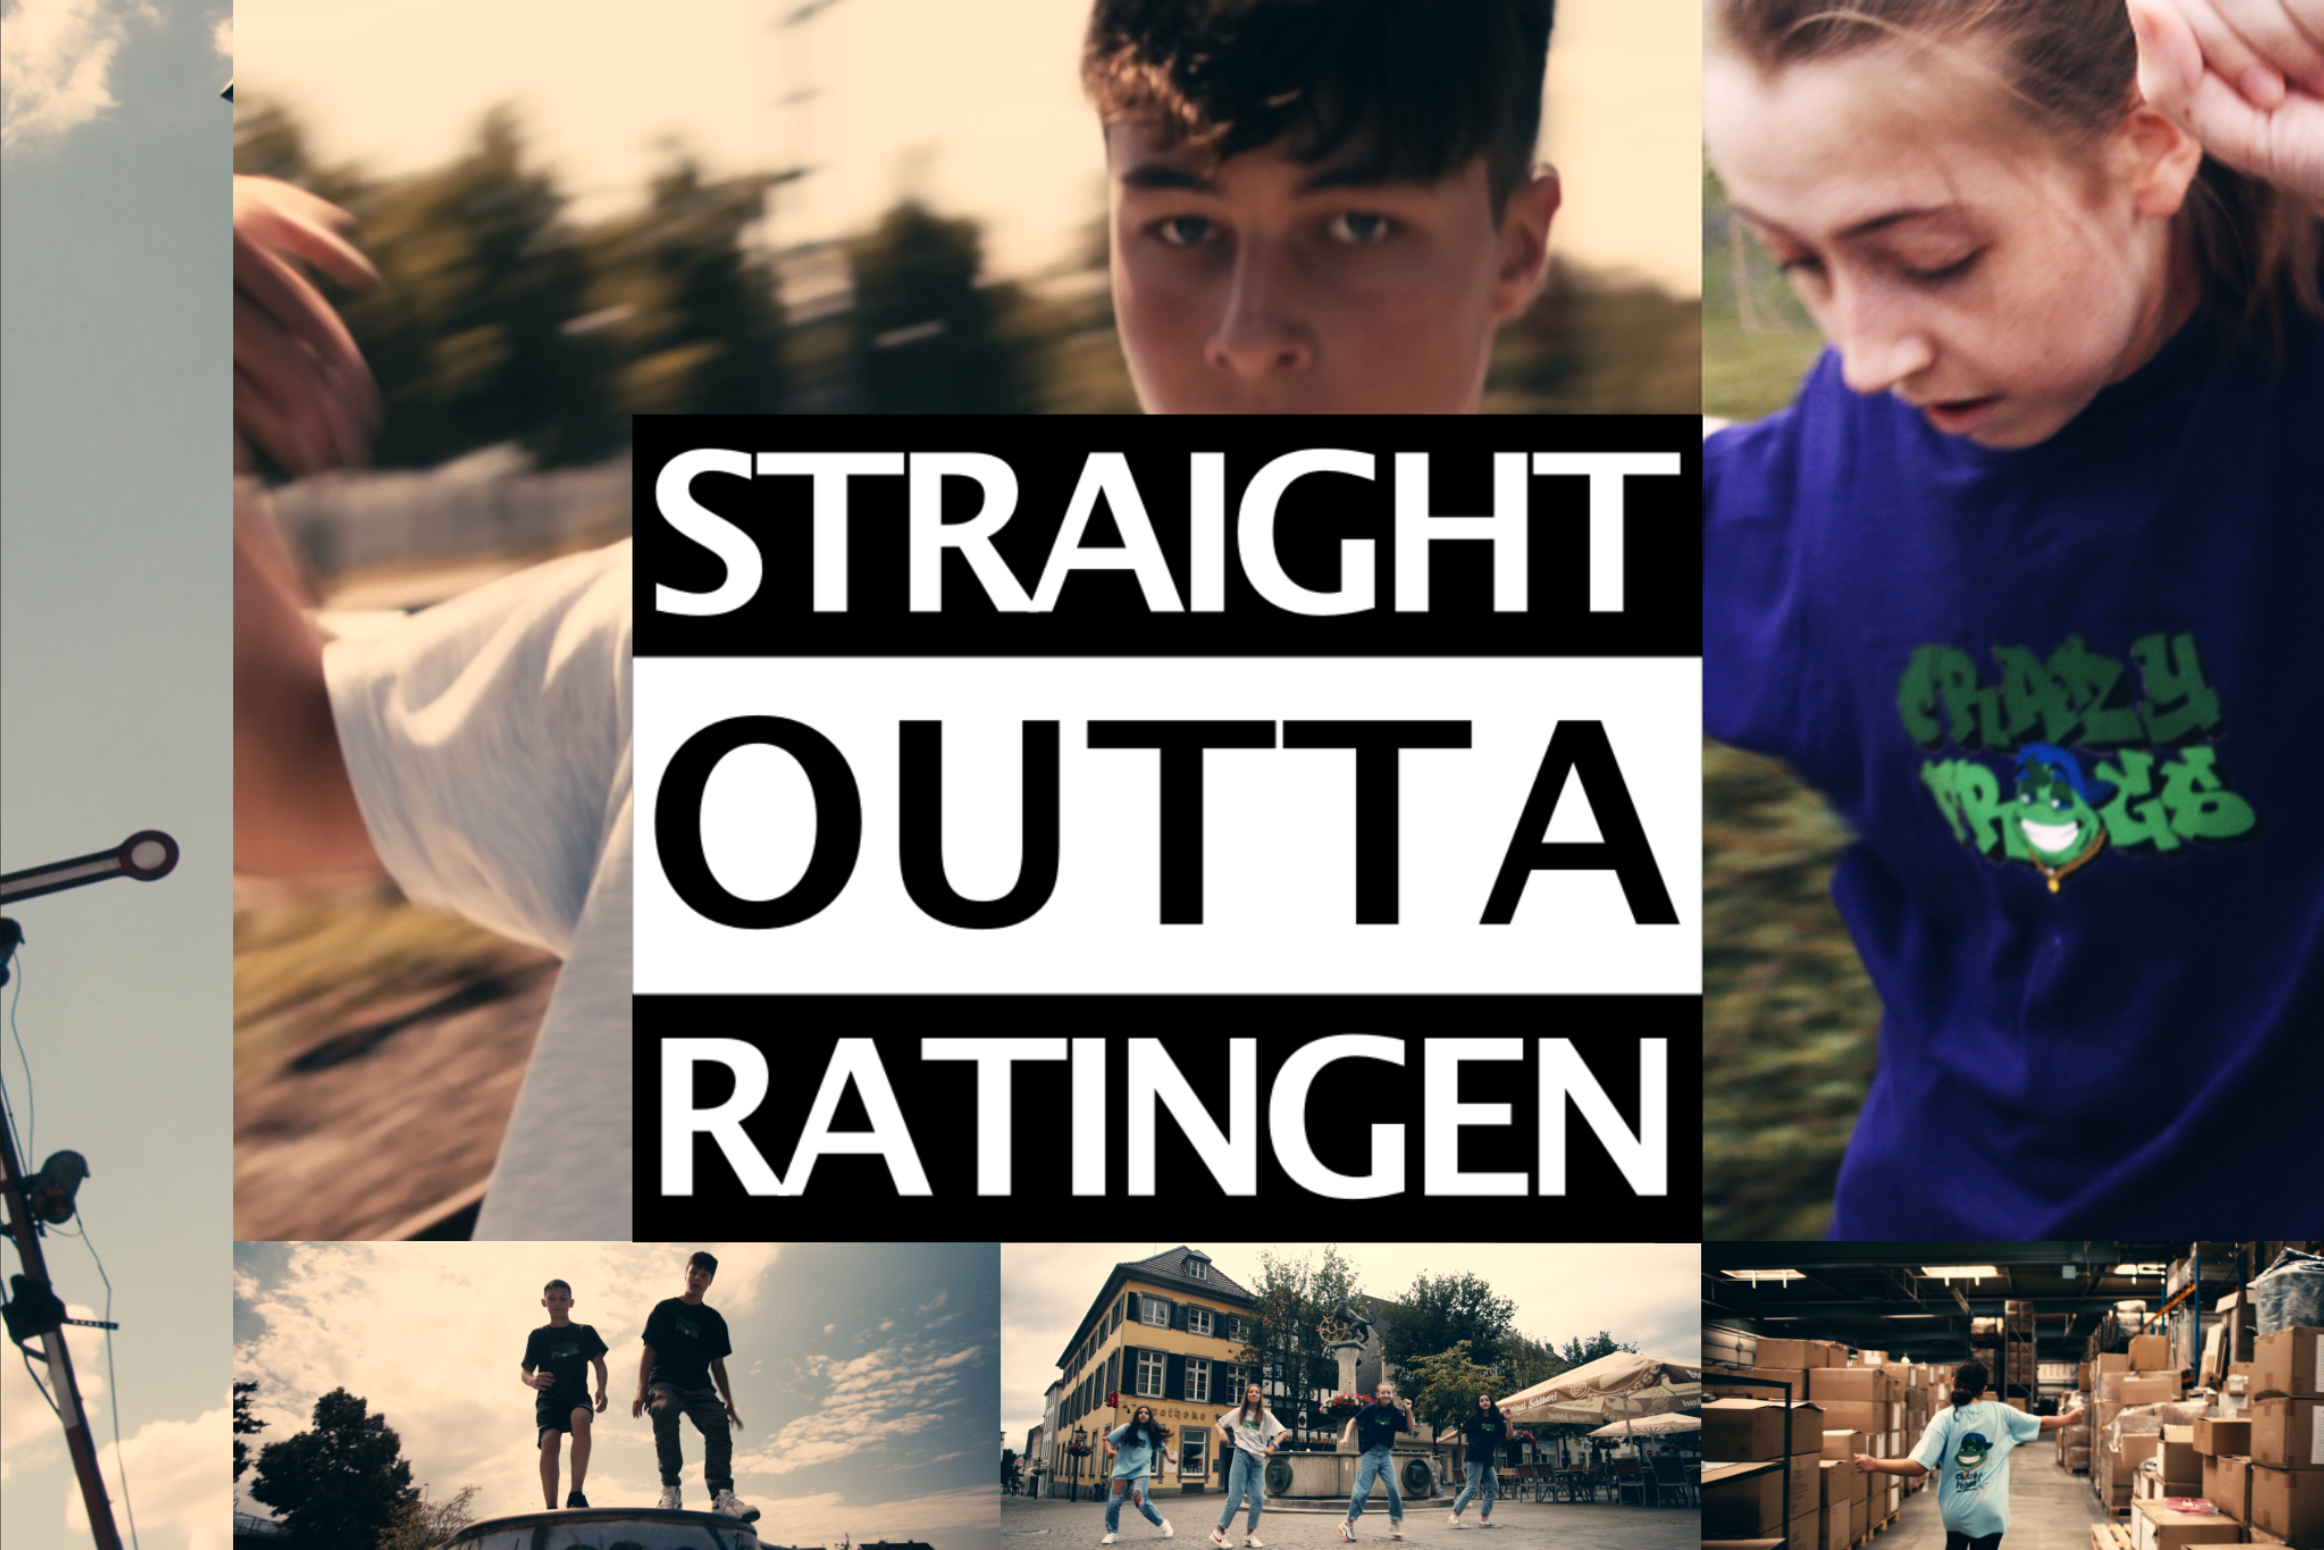 jugendkulturjahr-2020-ratingen-jkj2020-Straight Outta Ratingen